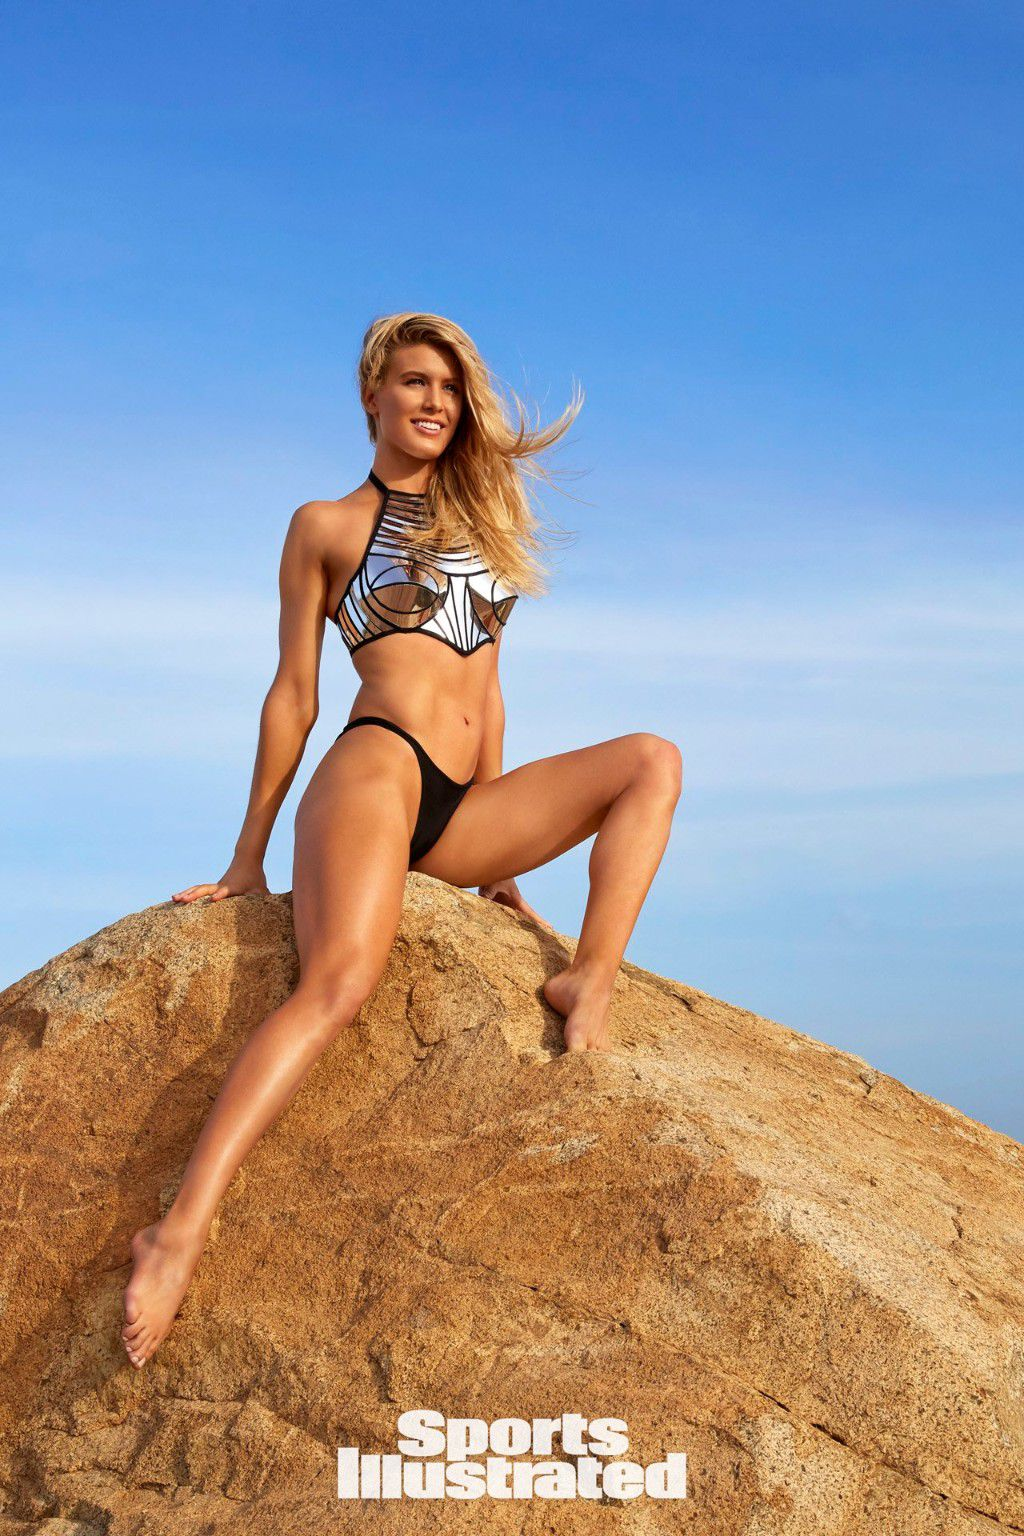 eugenie-bouchard-super-sexy-in-sports-illustrated-swimsuit-issue-2018-19